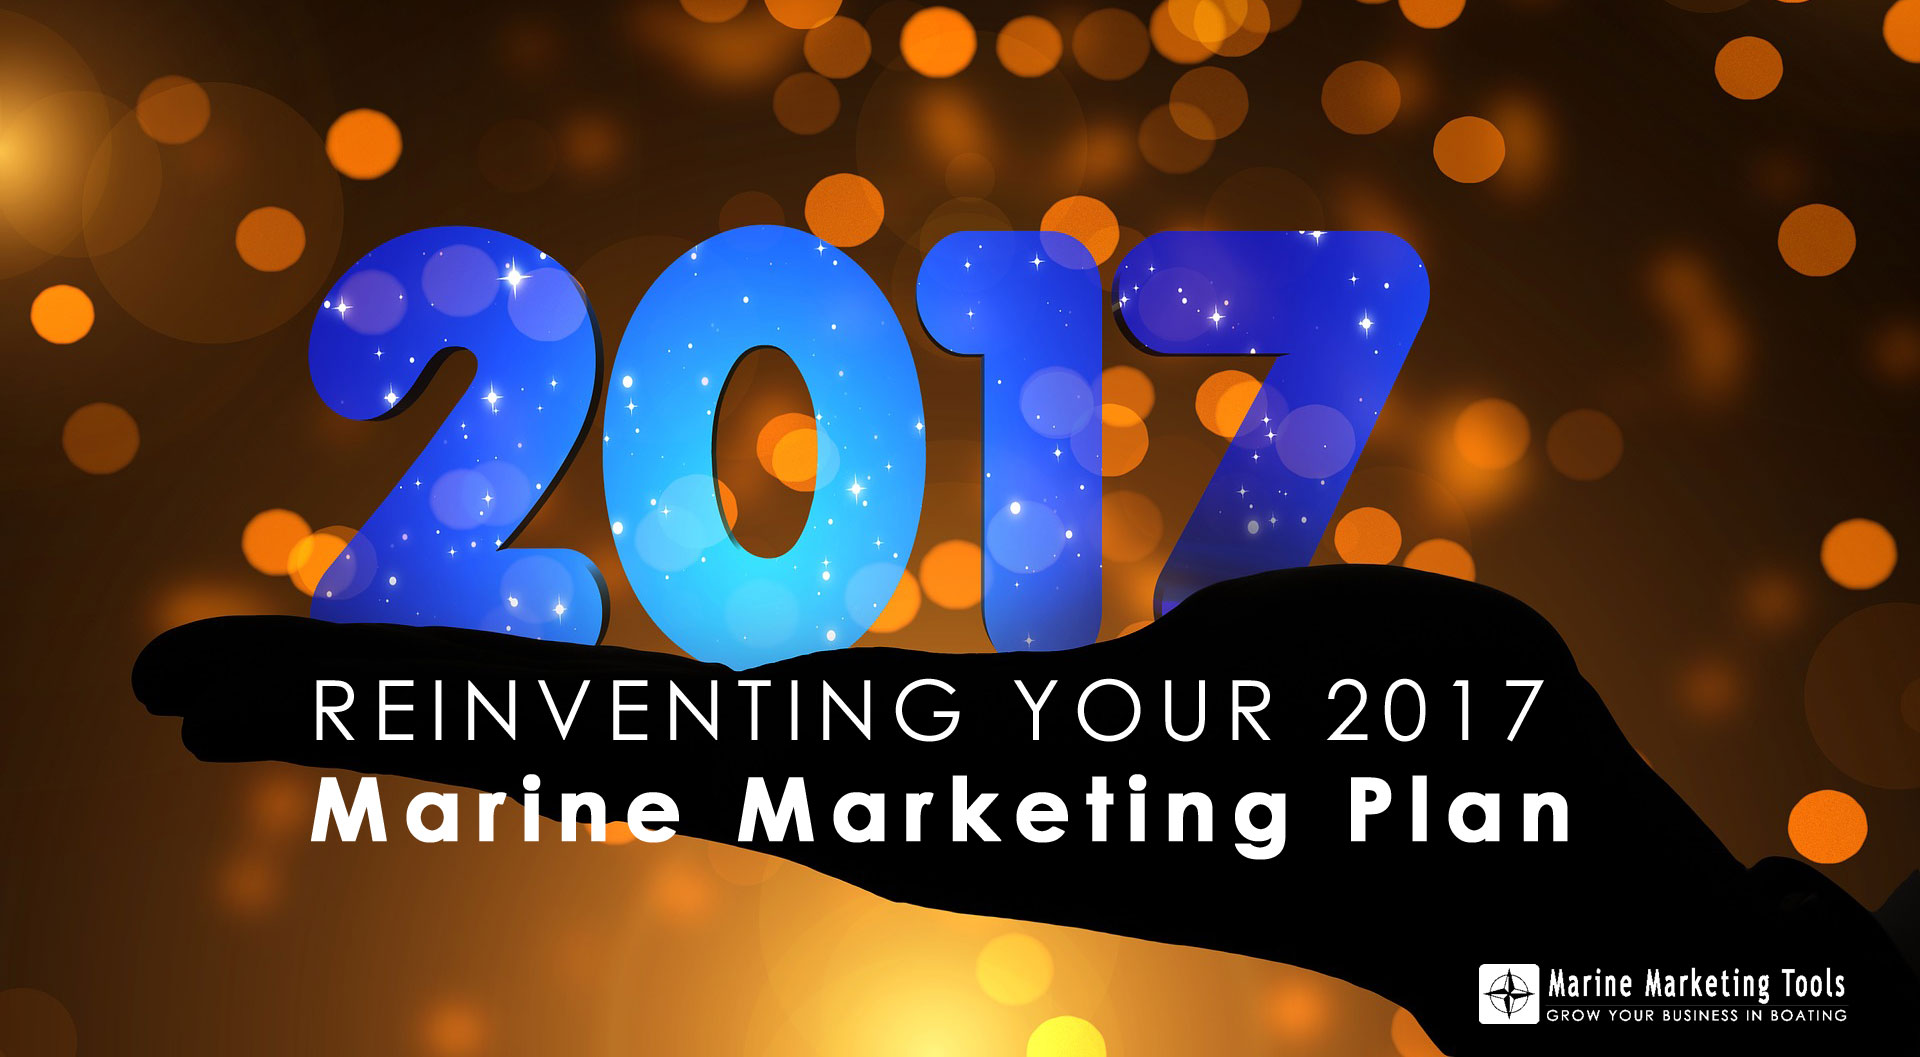 2017 marine marketing plan